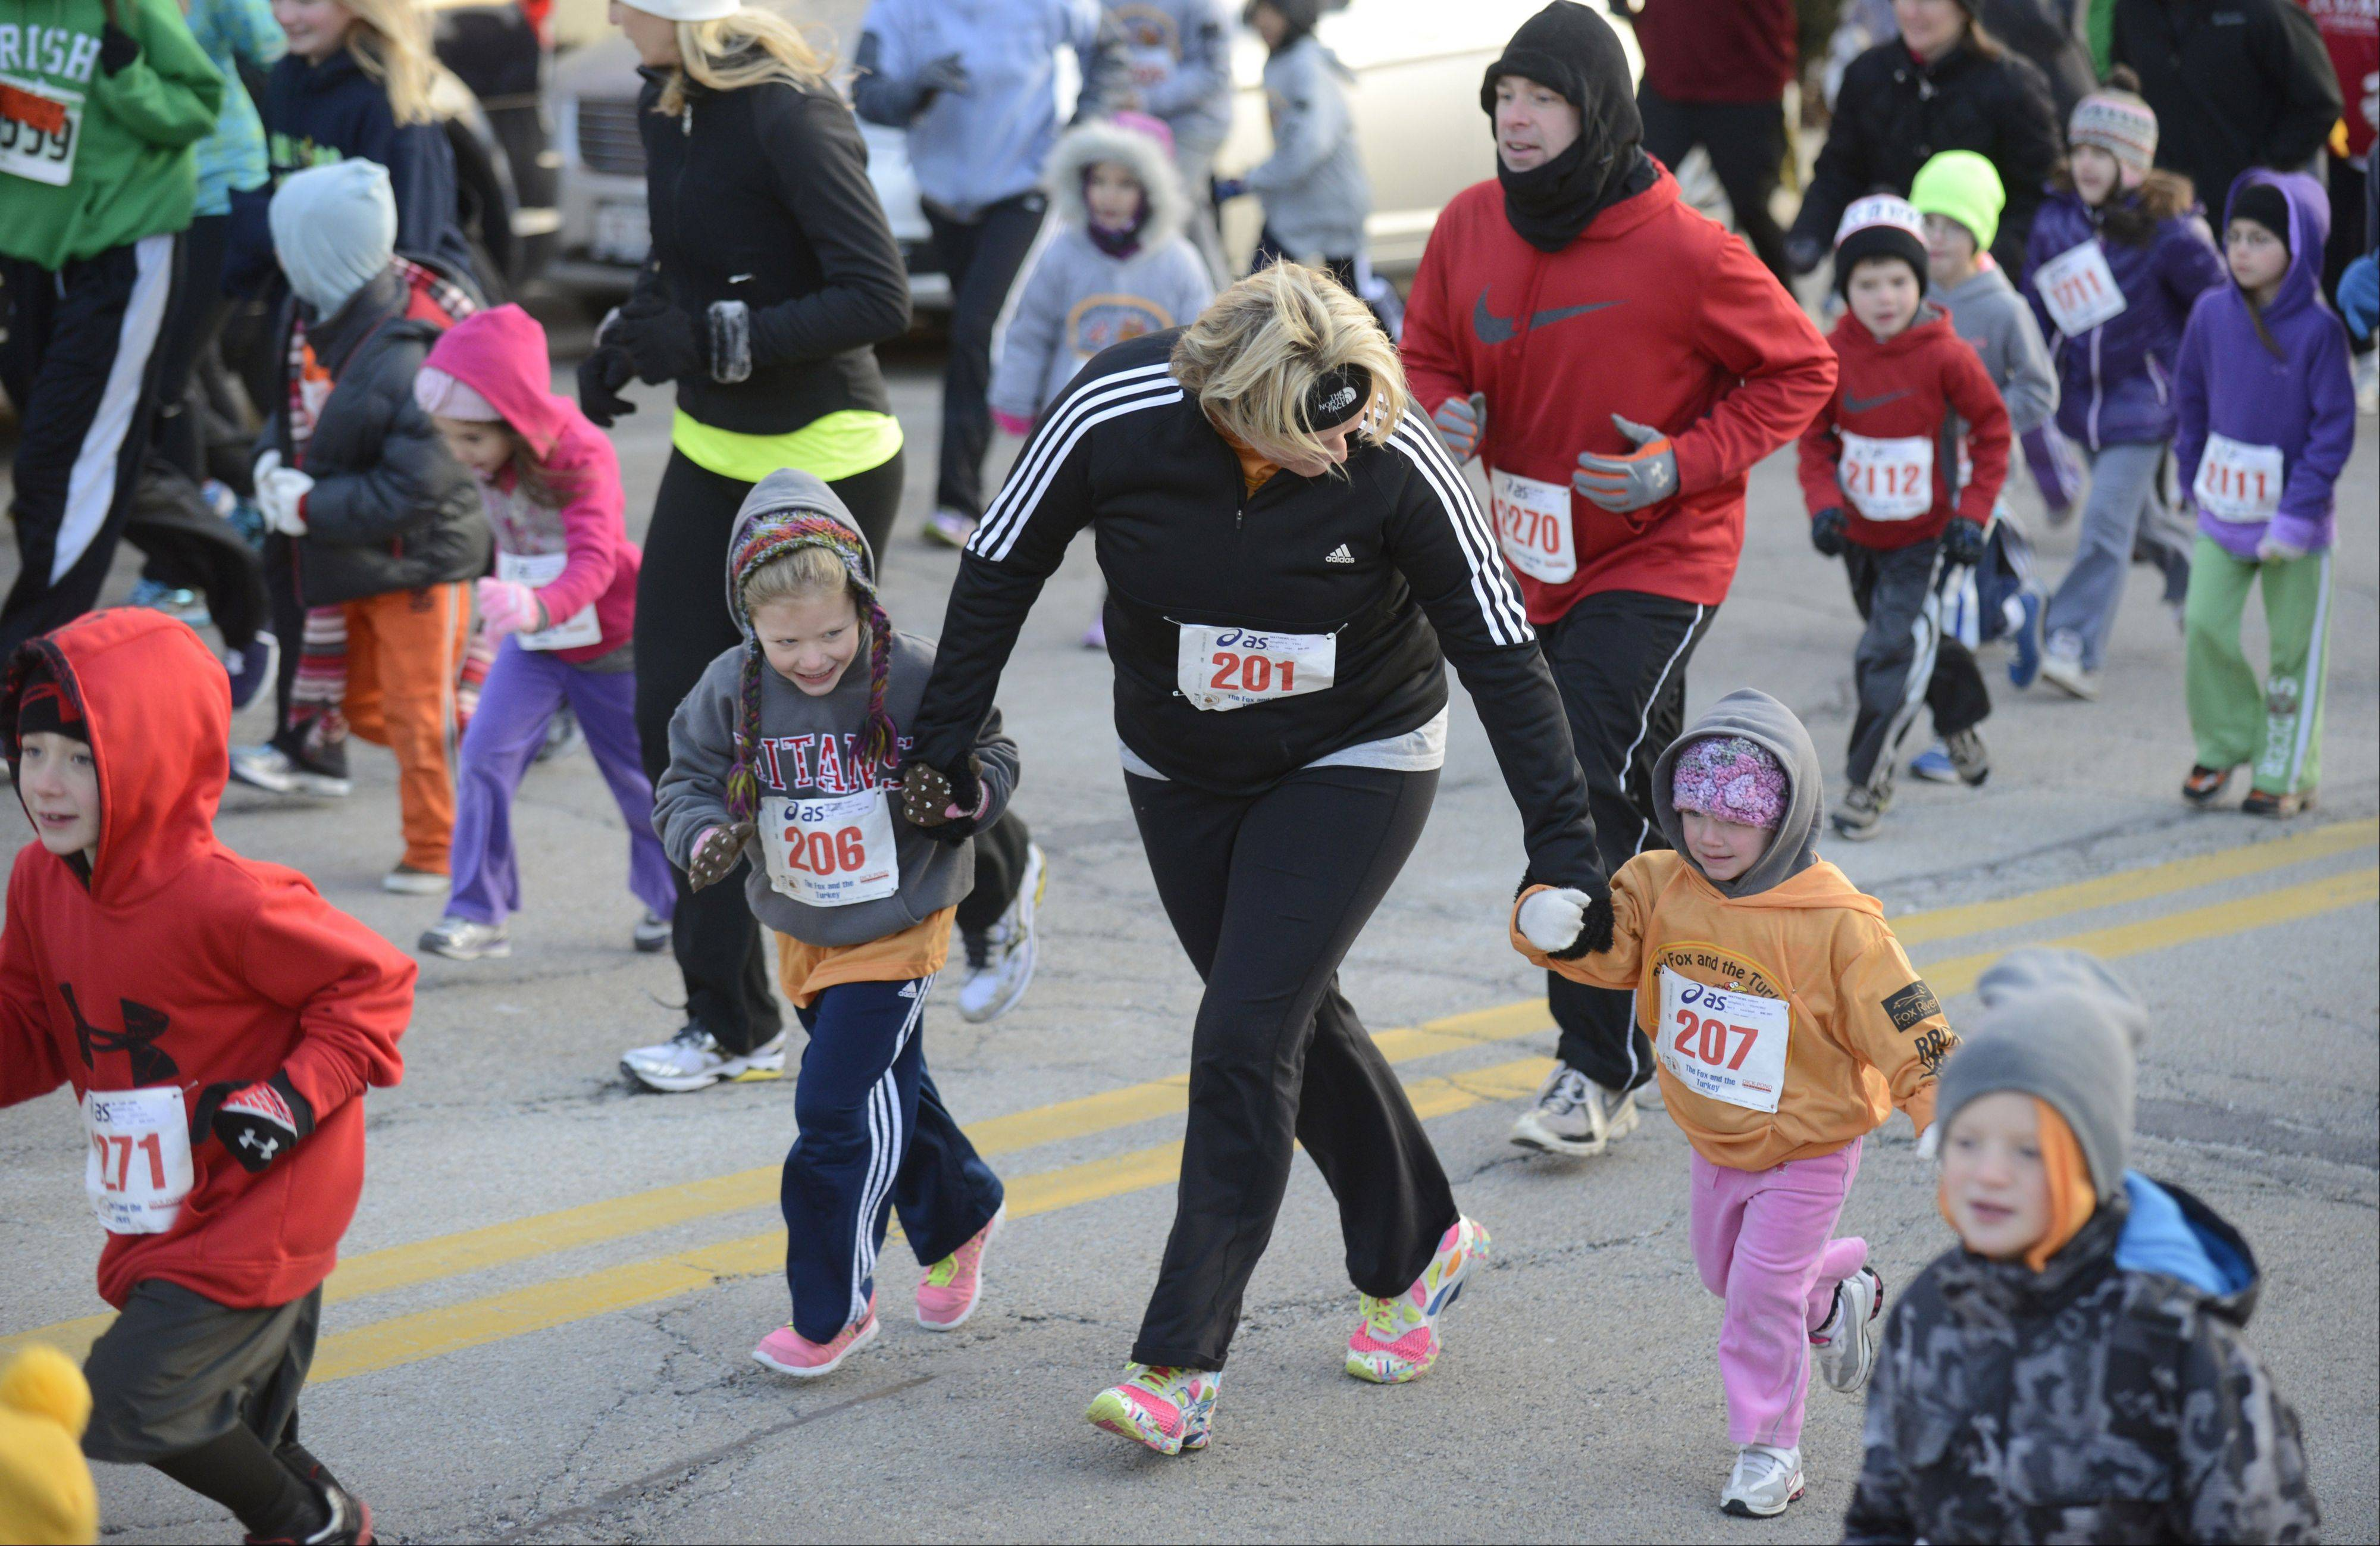 Springfield's Amy Matthews runs with her daughters, Karigan, 6, left, and Addie, 3, in the Youth Mile in the annual Fox and Tureky Races in Batavia on Thanksgiving Day. Matthews grew up in Bartlett and brings her family to visit her parents, Keith and Bev Christensen, now living in Hampshire.